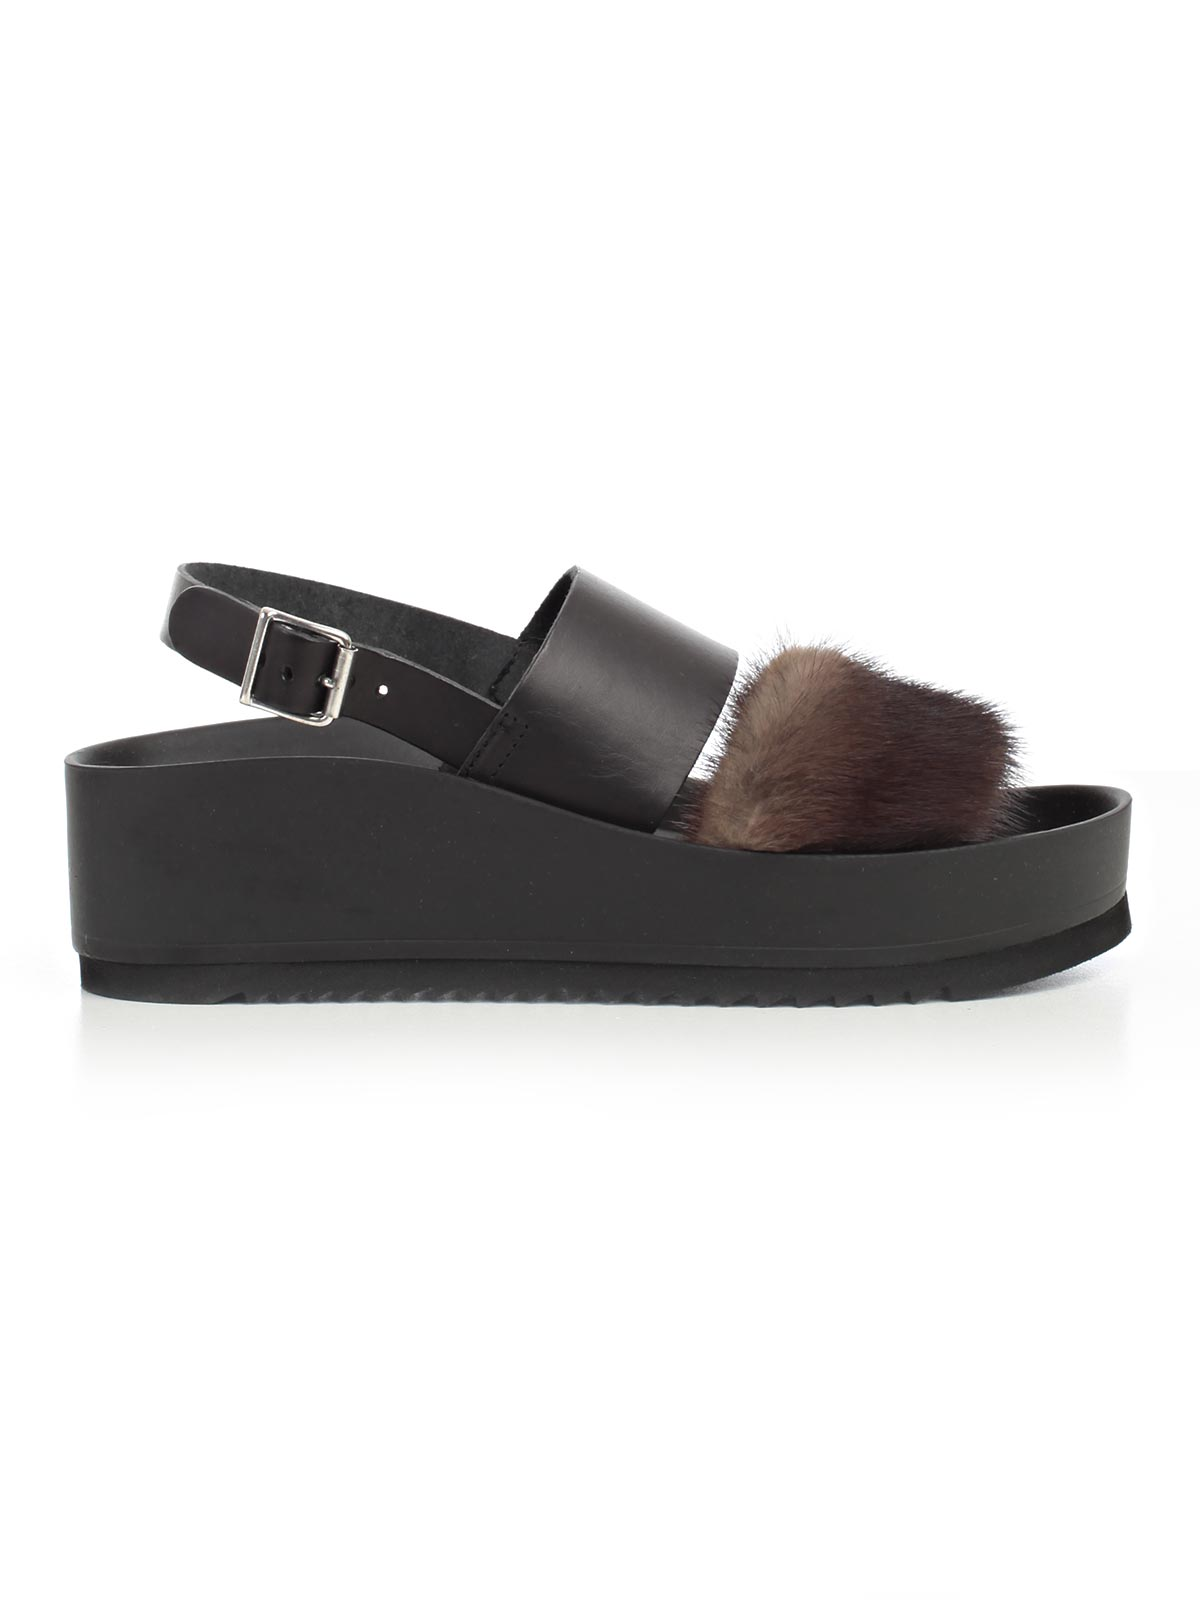 Picture of P.A.R.O.S.H. FOOTWEAR